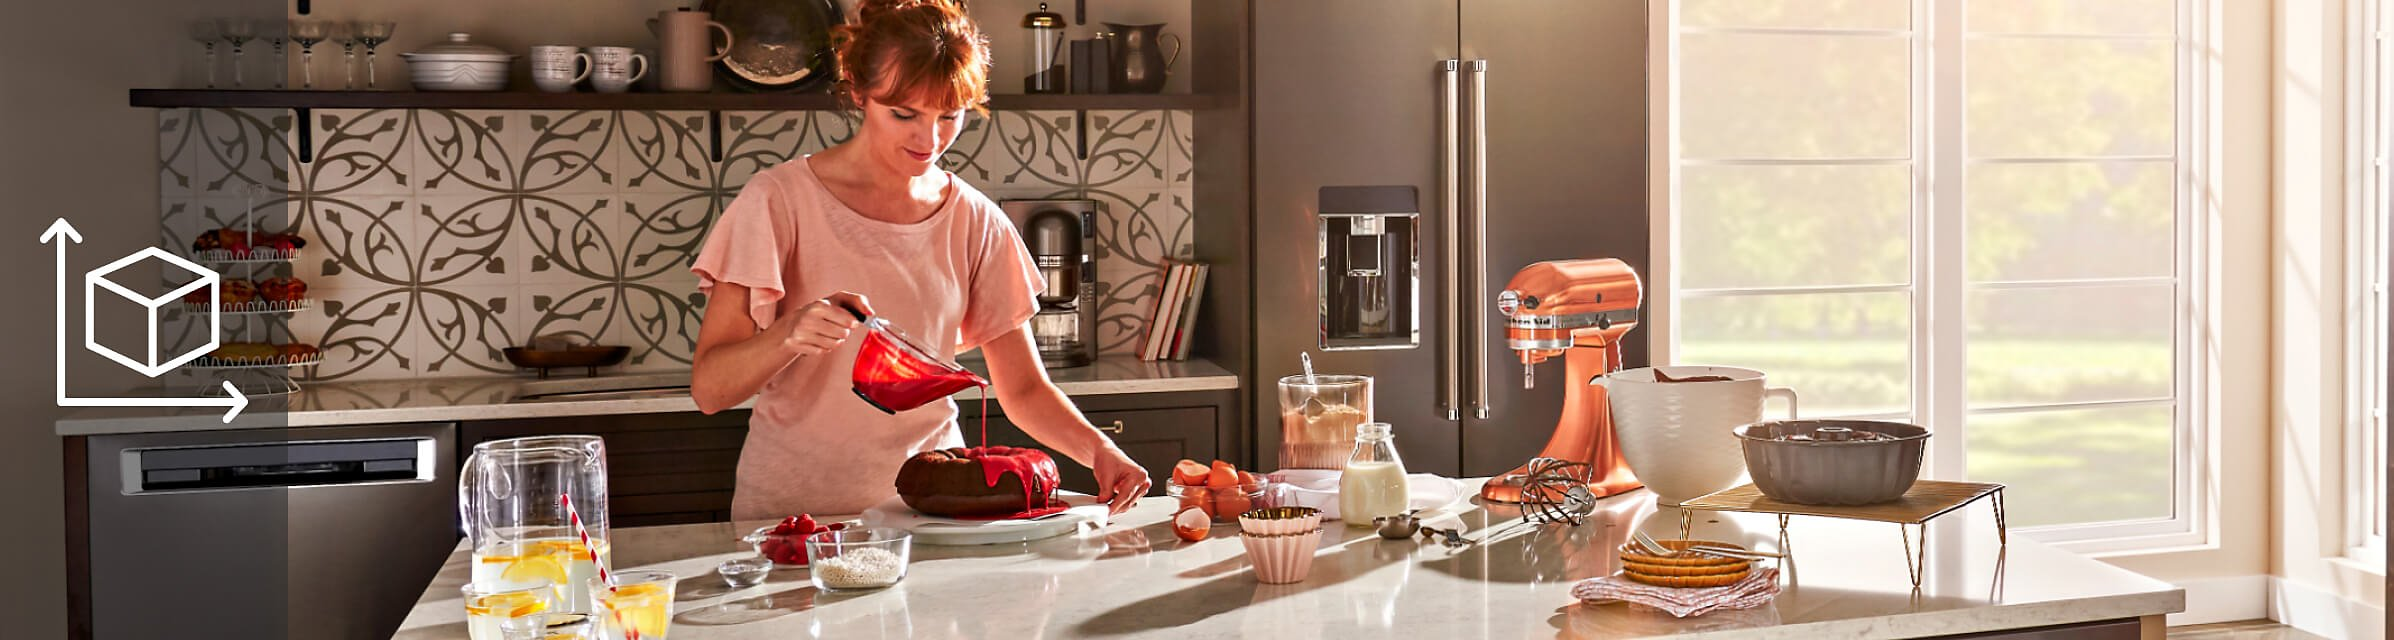 A person drizzling red icing on a cake and baking ingredients and a KitchenAid® stand mixer on the counter